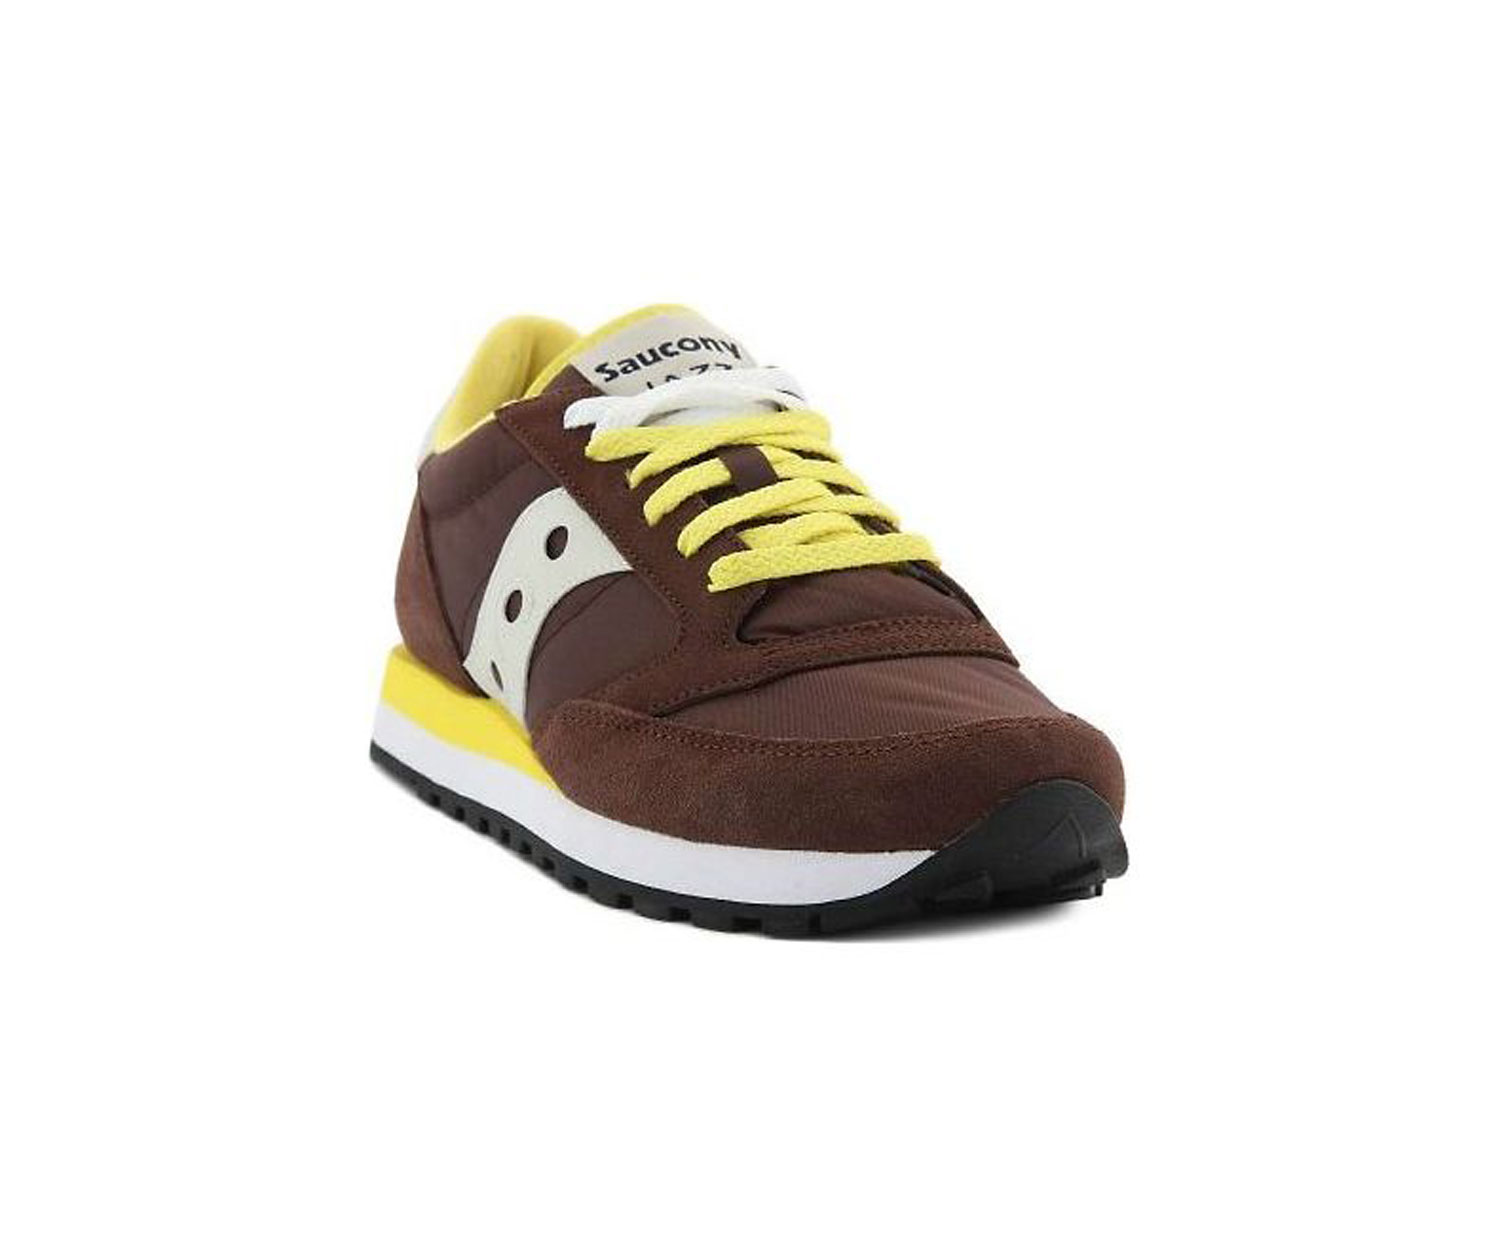 Saucony Uomo Jazz Original Marrone Giallo